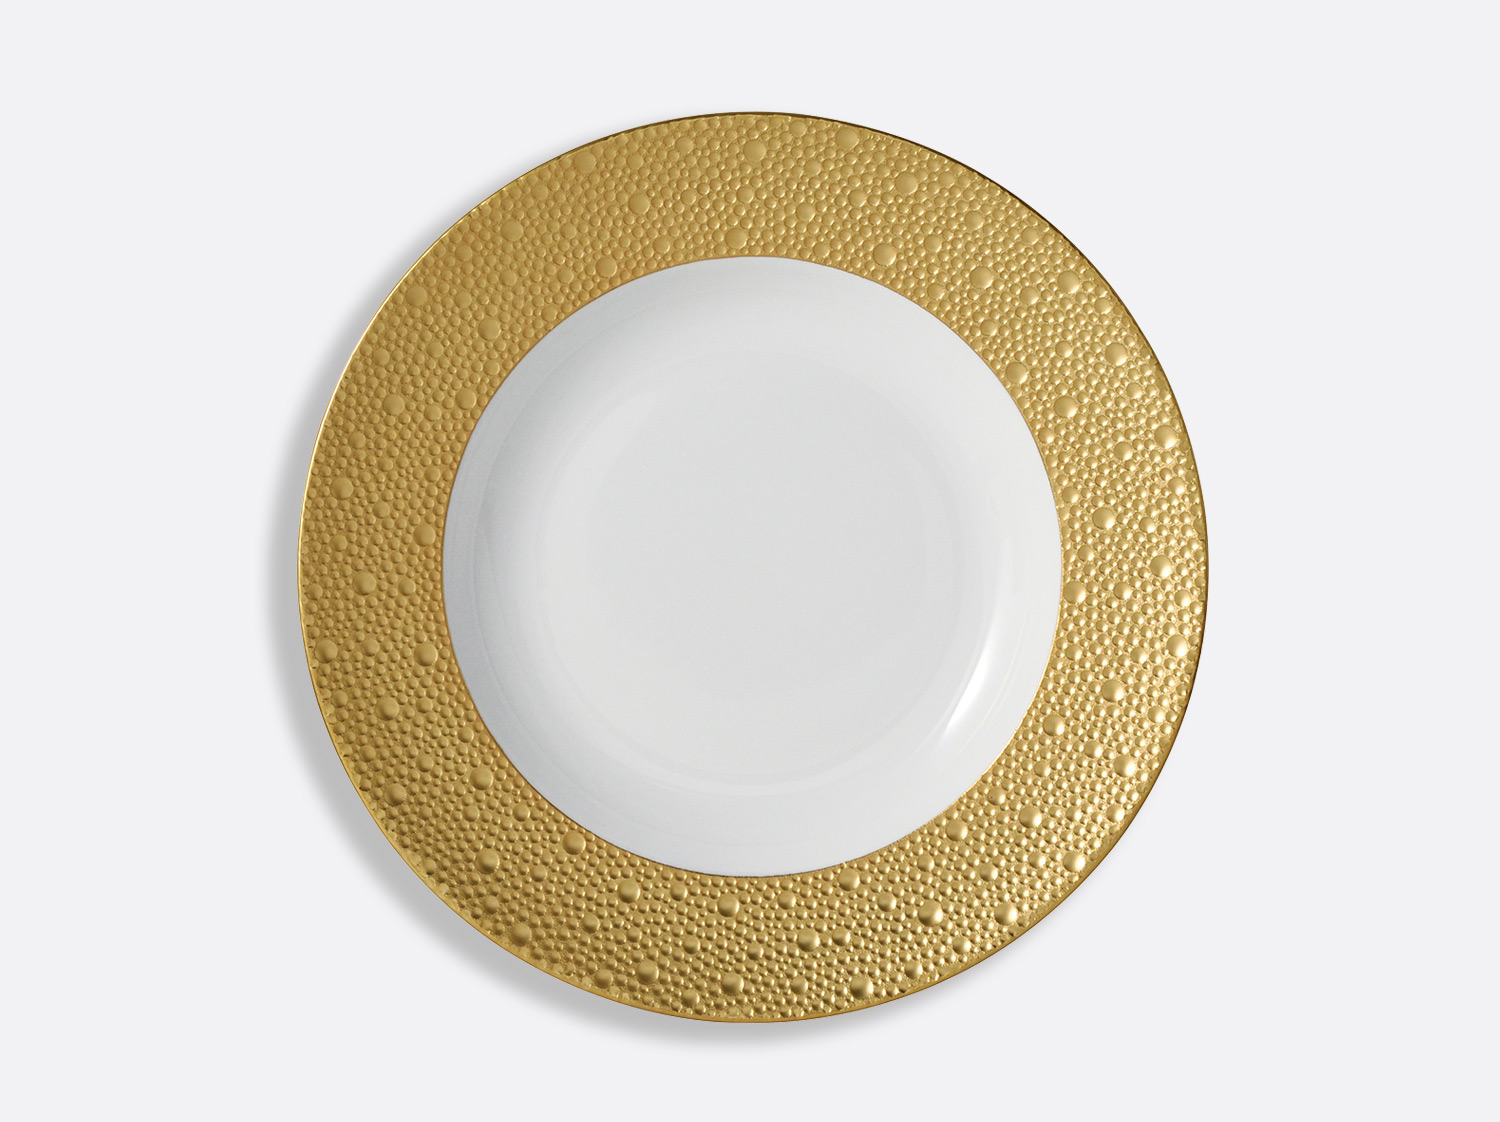 China Rim soup plate 23 cm of the collection Ecume gold | Bernardaud